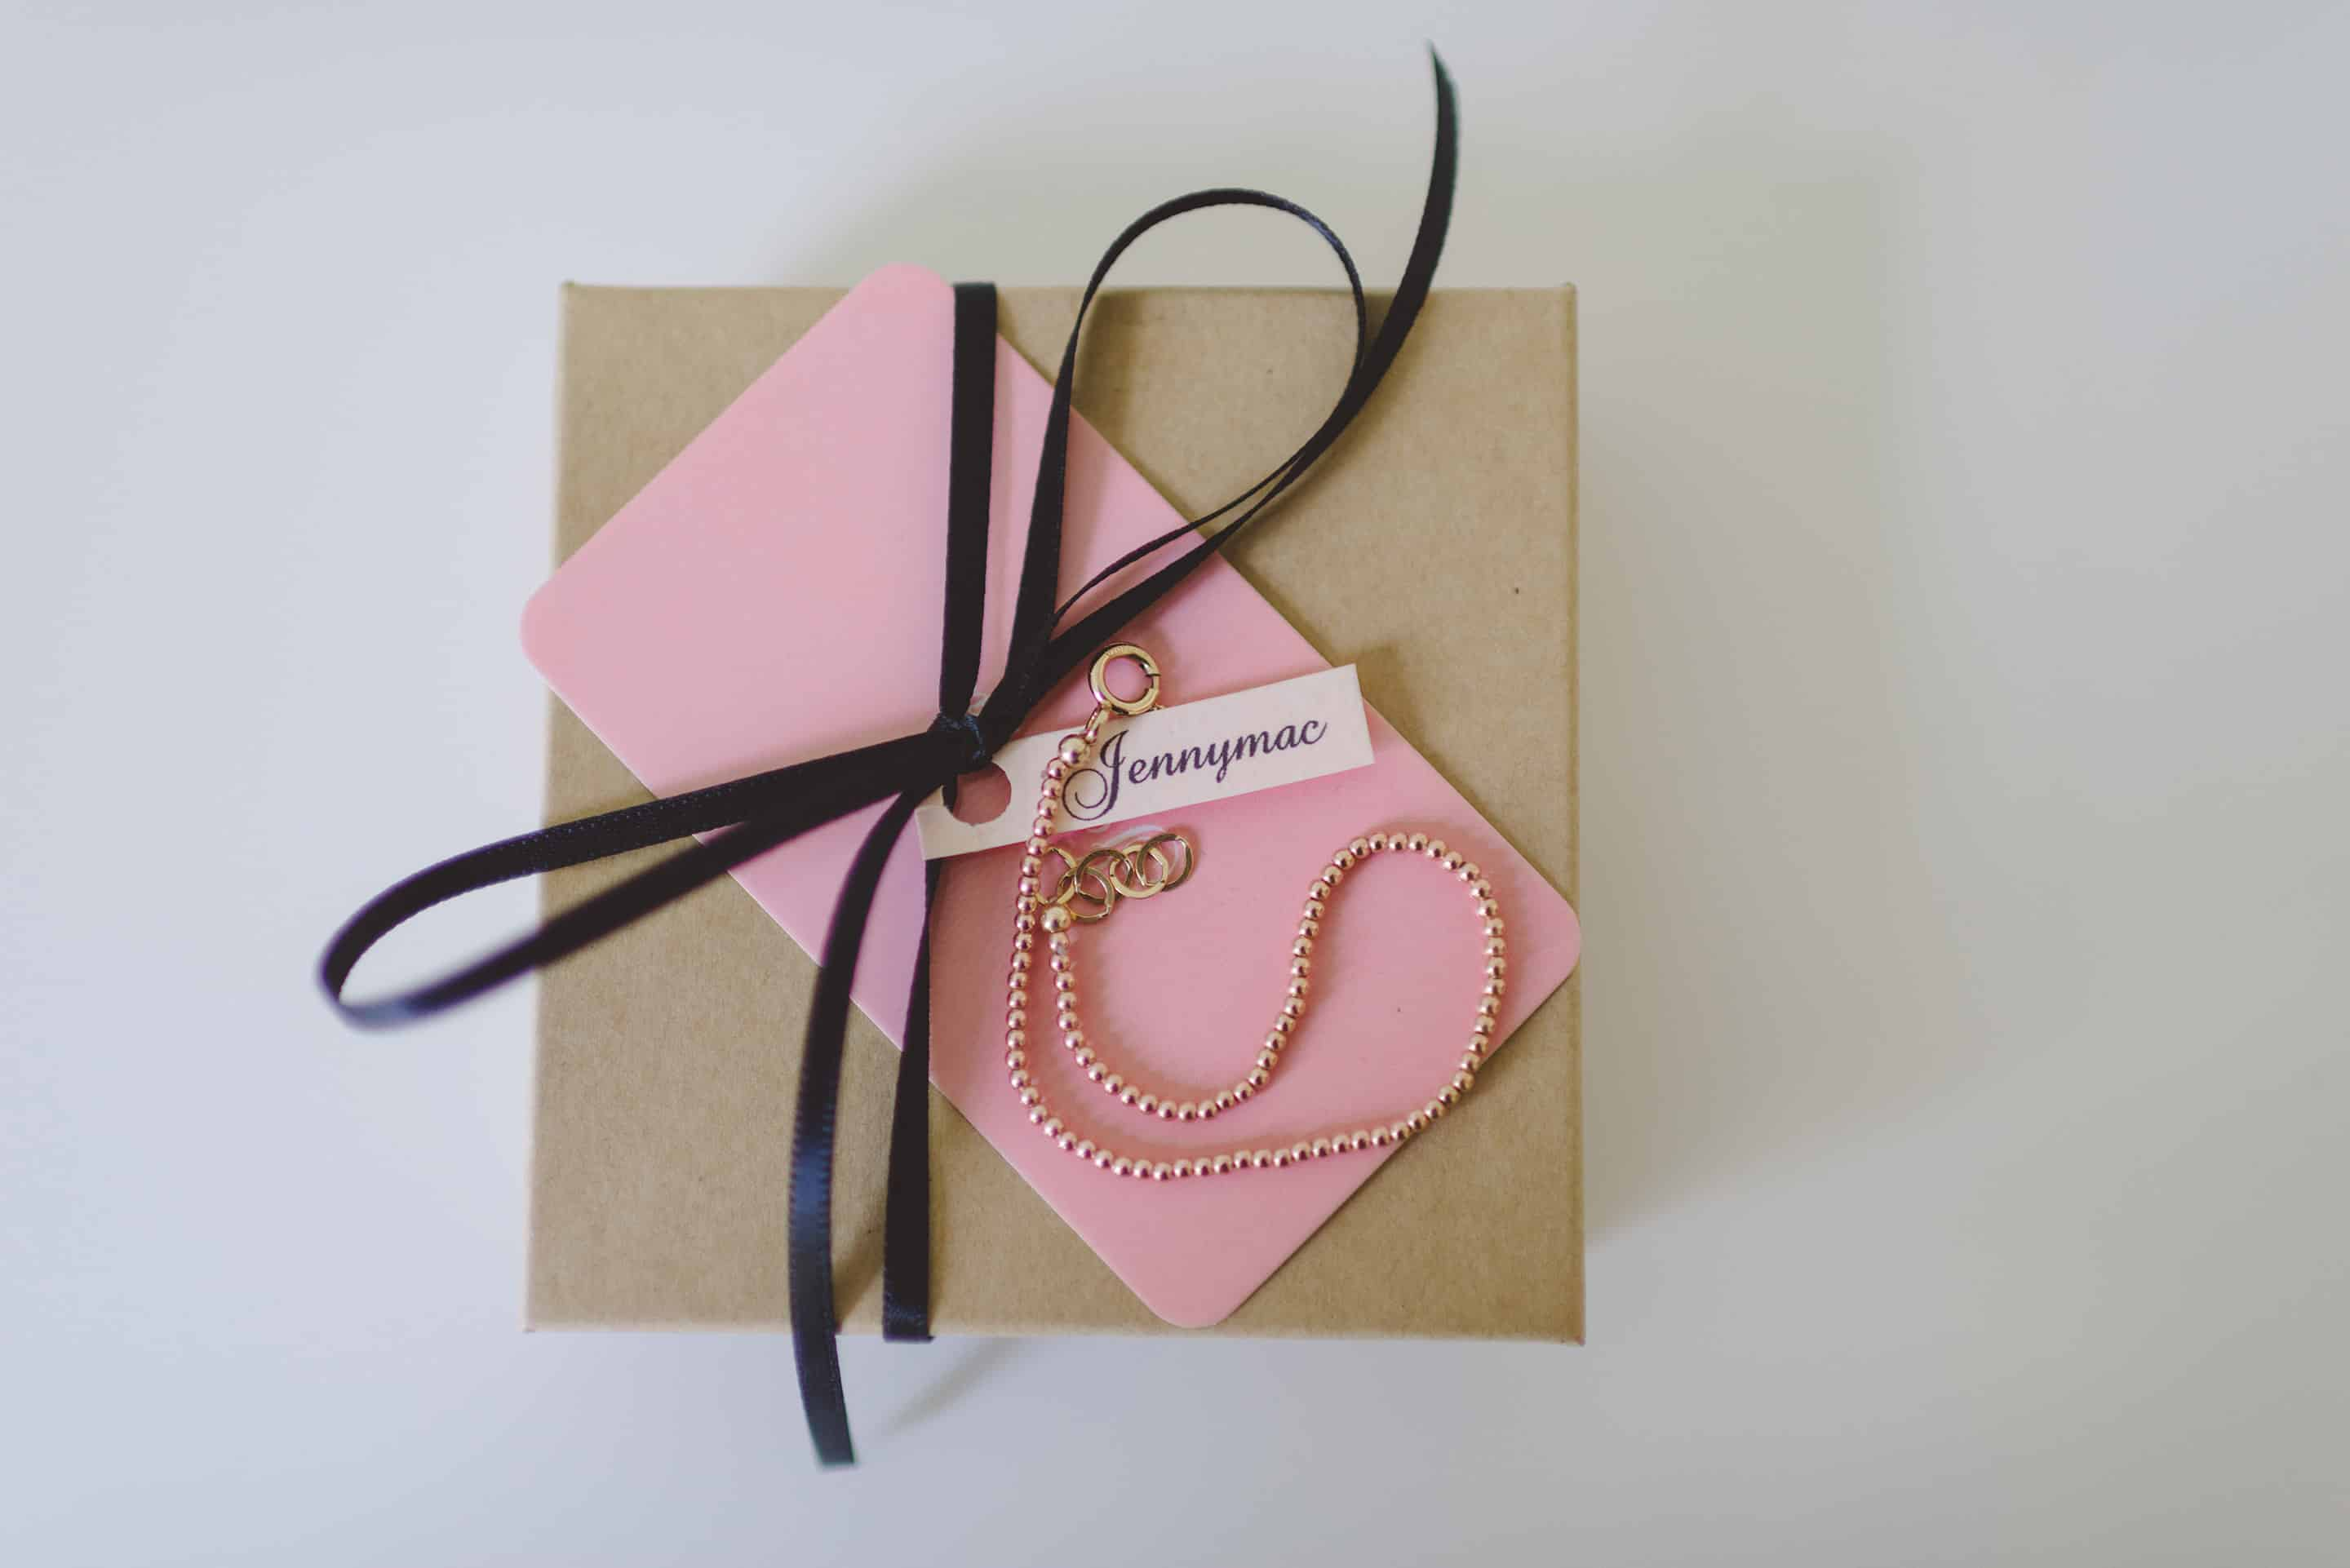 Jennymac Pinky Ball Bracelet - Dinner at Tiffani's Celebrity Crate